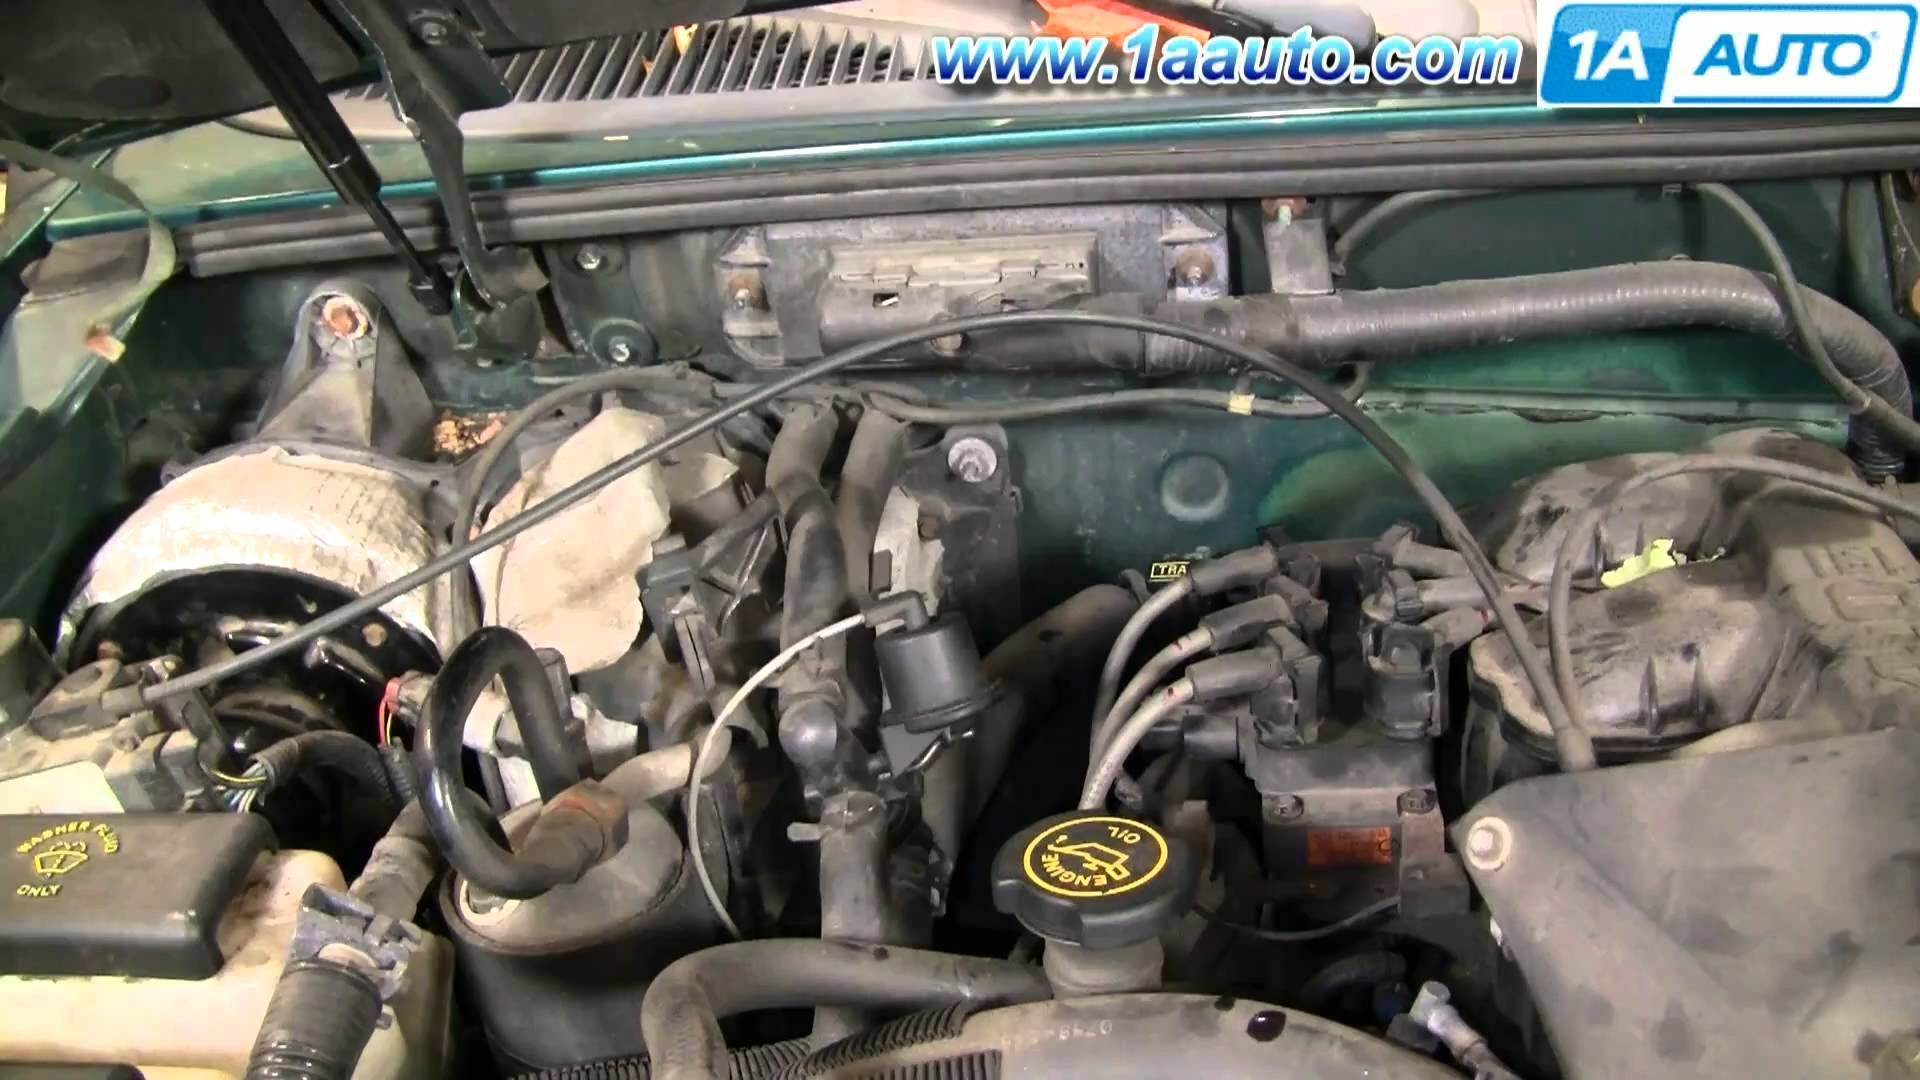 Auto Repair How Do I Check or Add Automatic Transmission